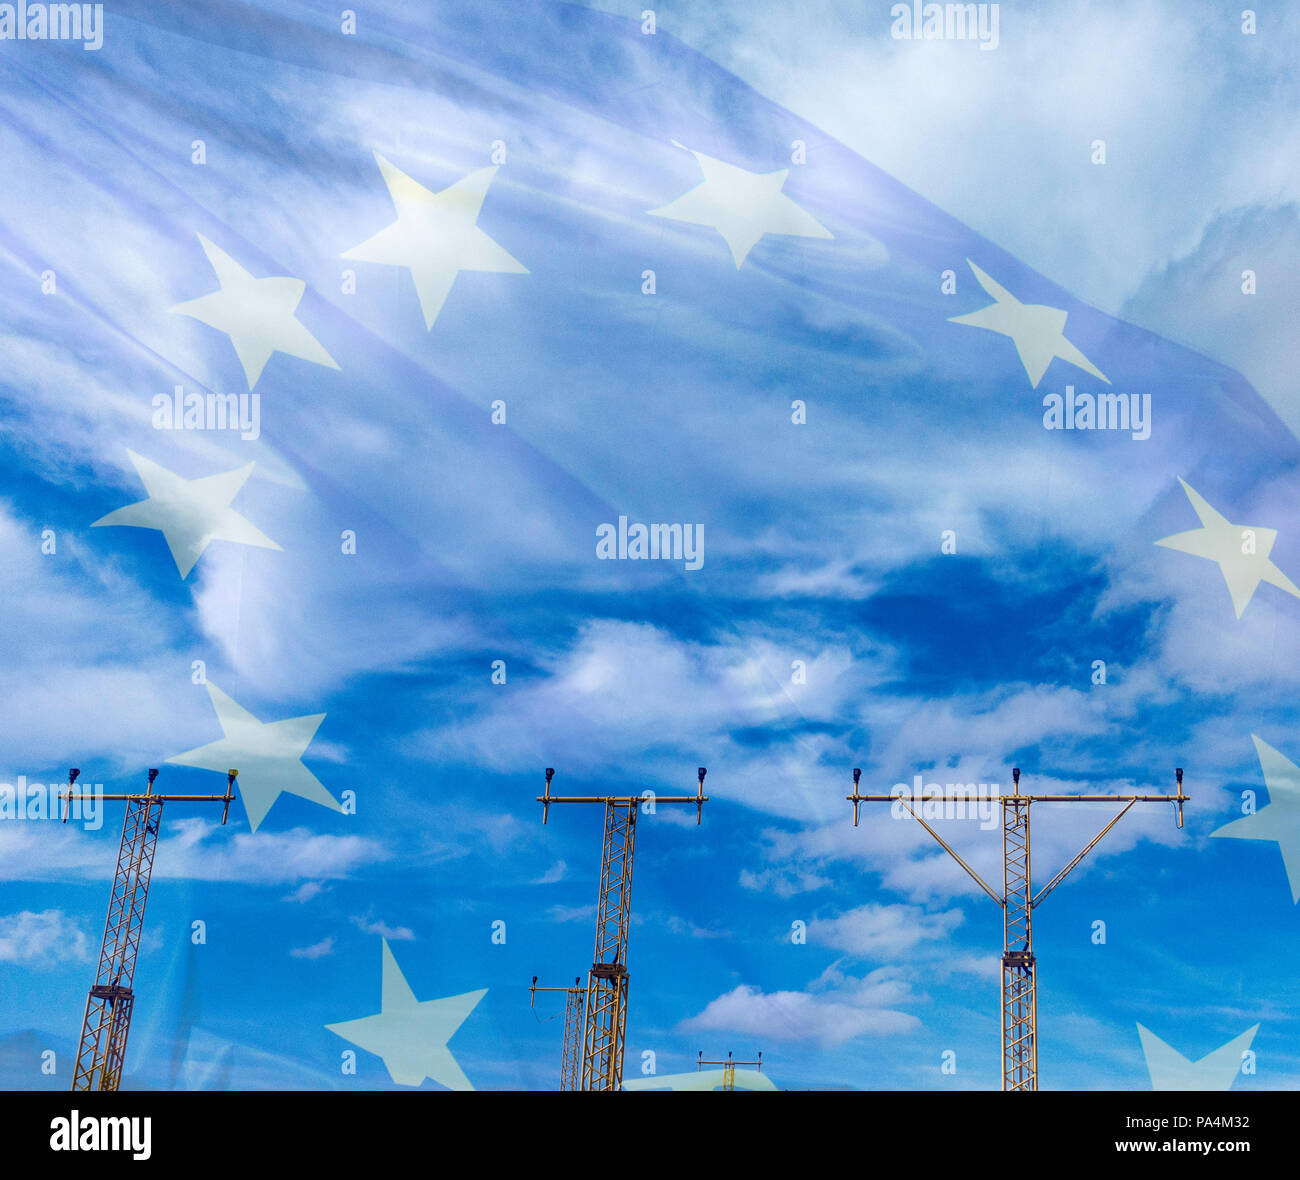 European Union flag blended with sky above airport. EU/UK/Irish border Brexit, immigration...concept. - Stock Image